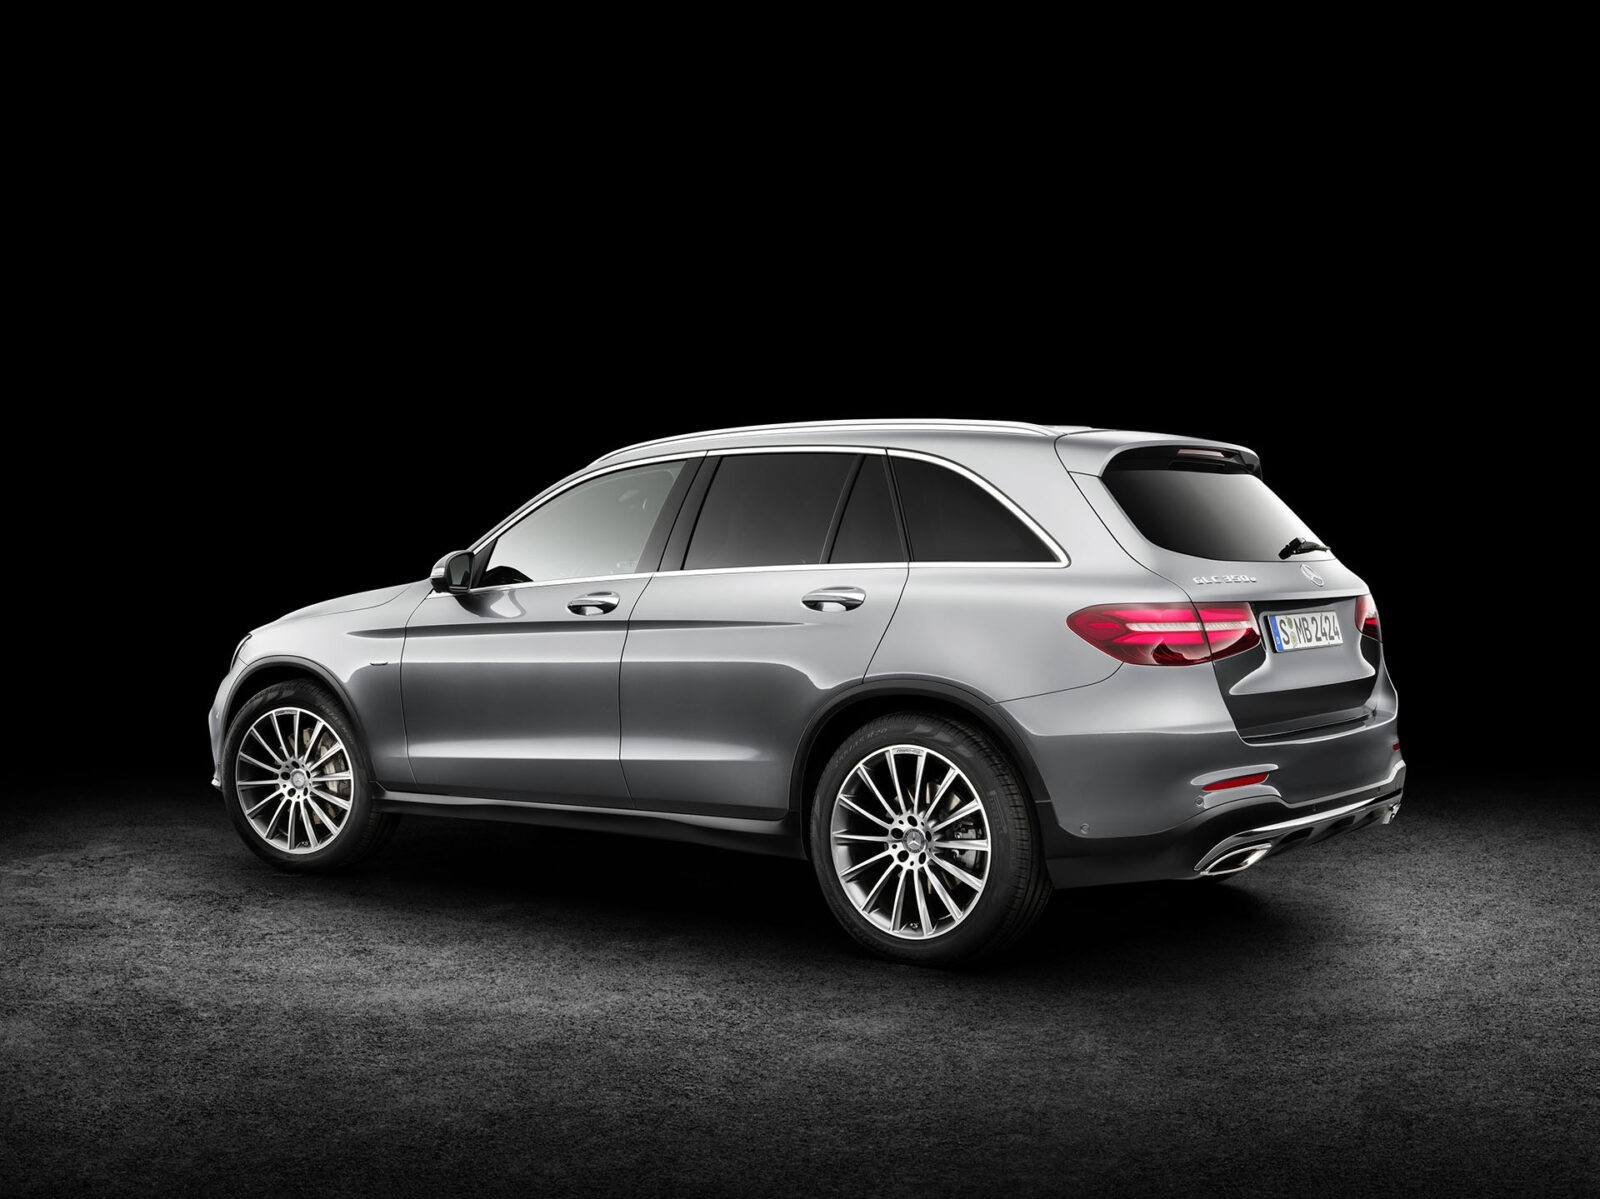 21 mercedes benz glc 2015 hd wallpapers download. Black Bedroom Furniture Sets. Home Design Ideas